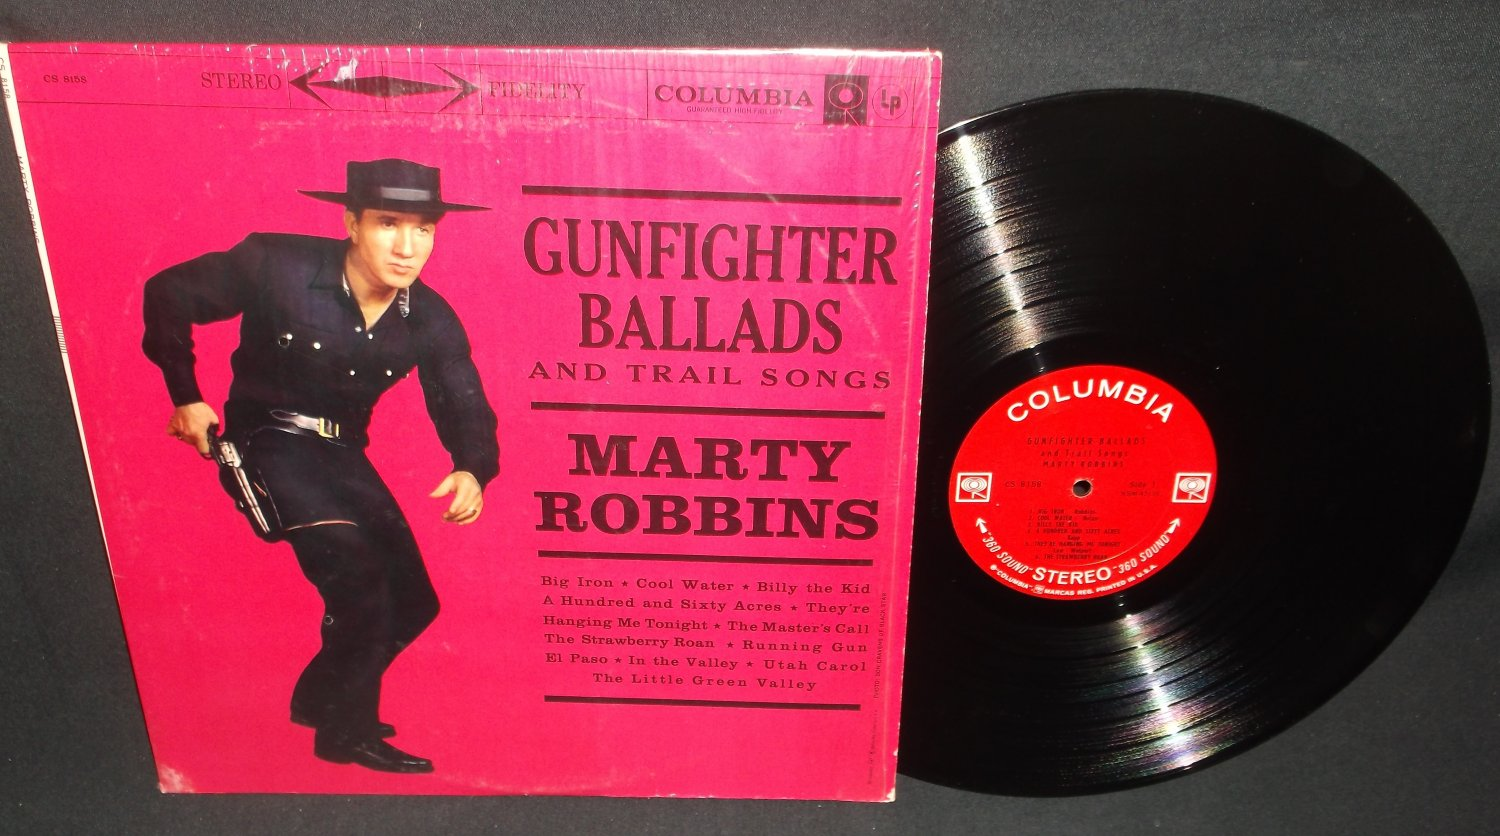 Marty Robbins - Gunfighter Ballads -  COLUMBIA 8158 - Country Record LP